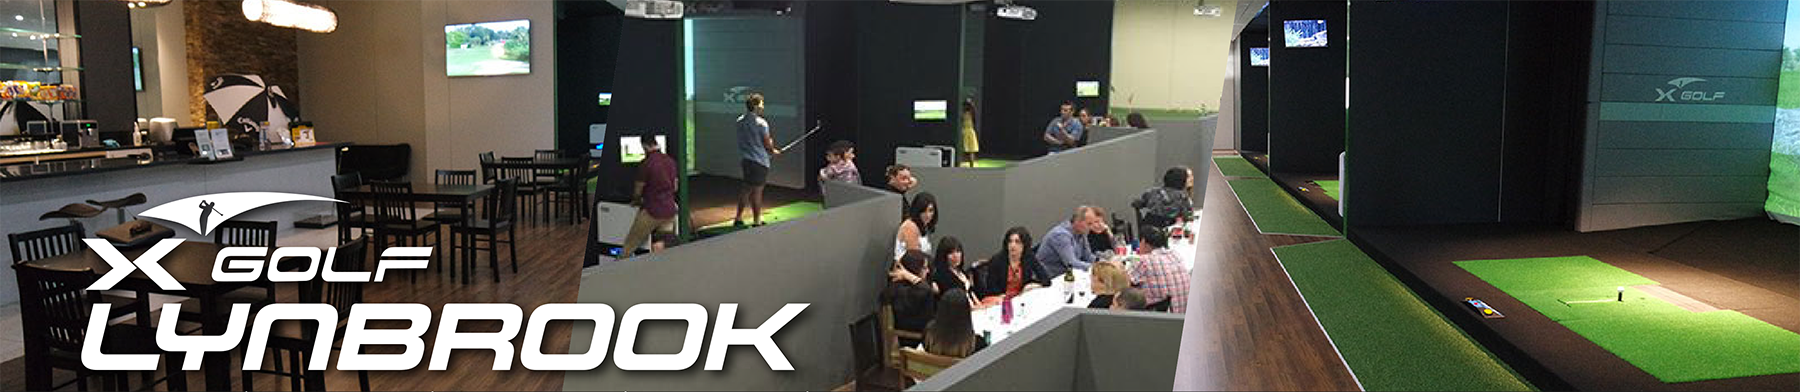 X-Golf Lynbrook Collage - Venue, Simulators and Players